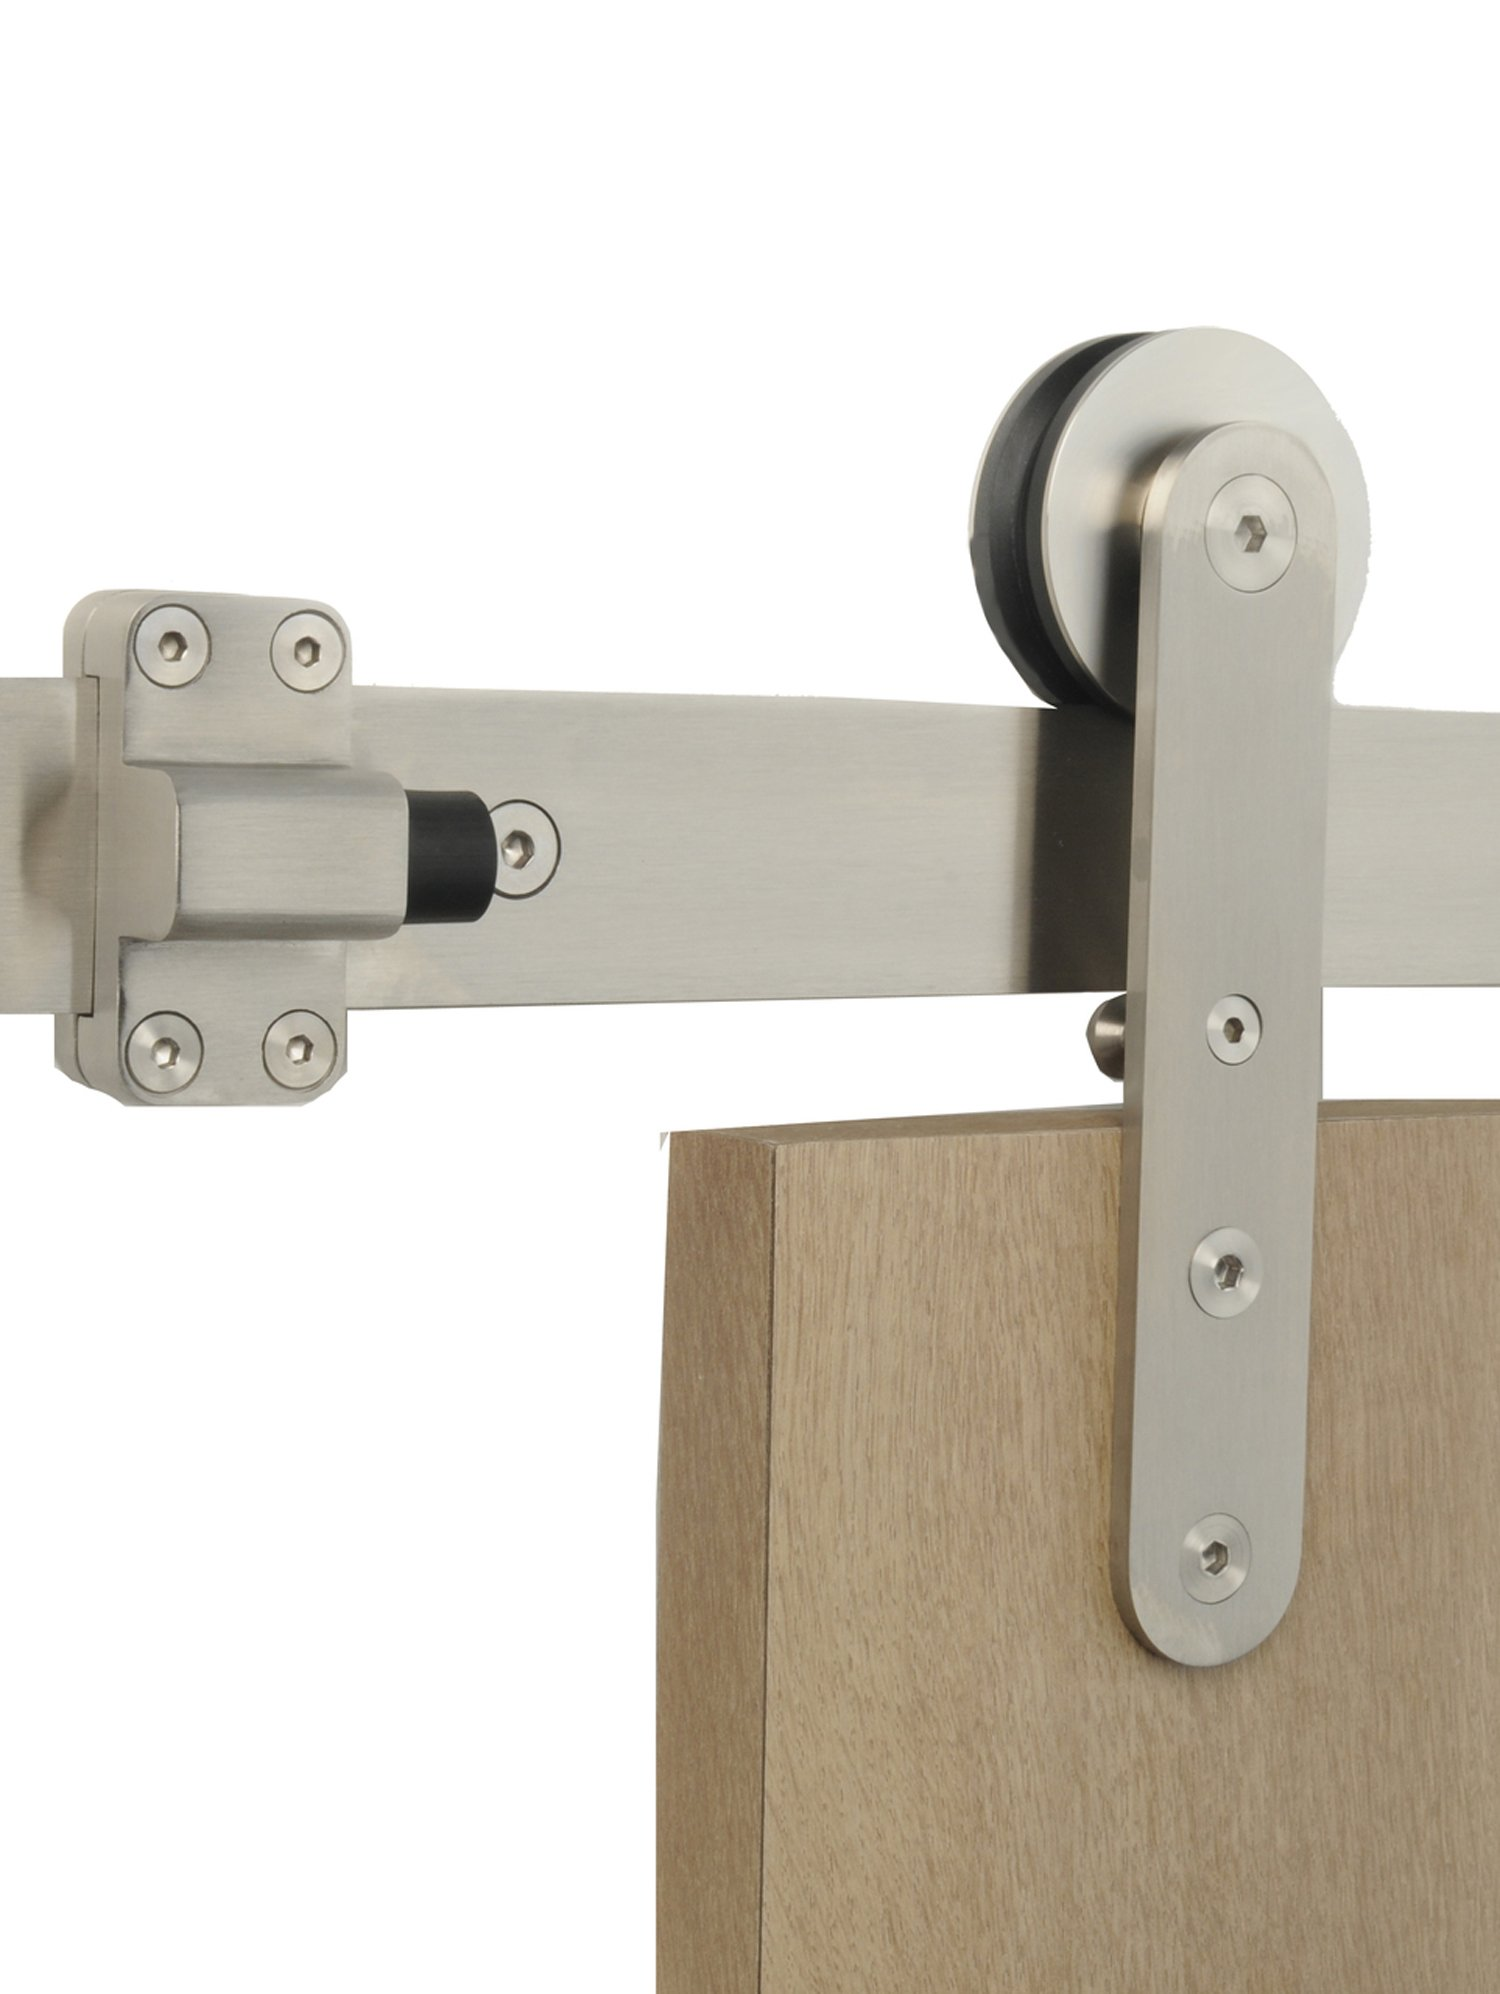 Contemporary Flat Track Stainless Steel Sliding Barn Door Hardware for Wood Doors / Satin Finish - Torch WF Series (7 Feet Rail Length)